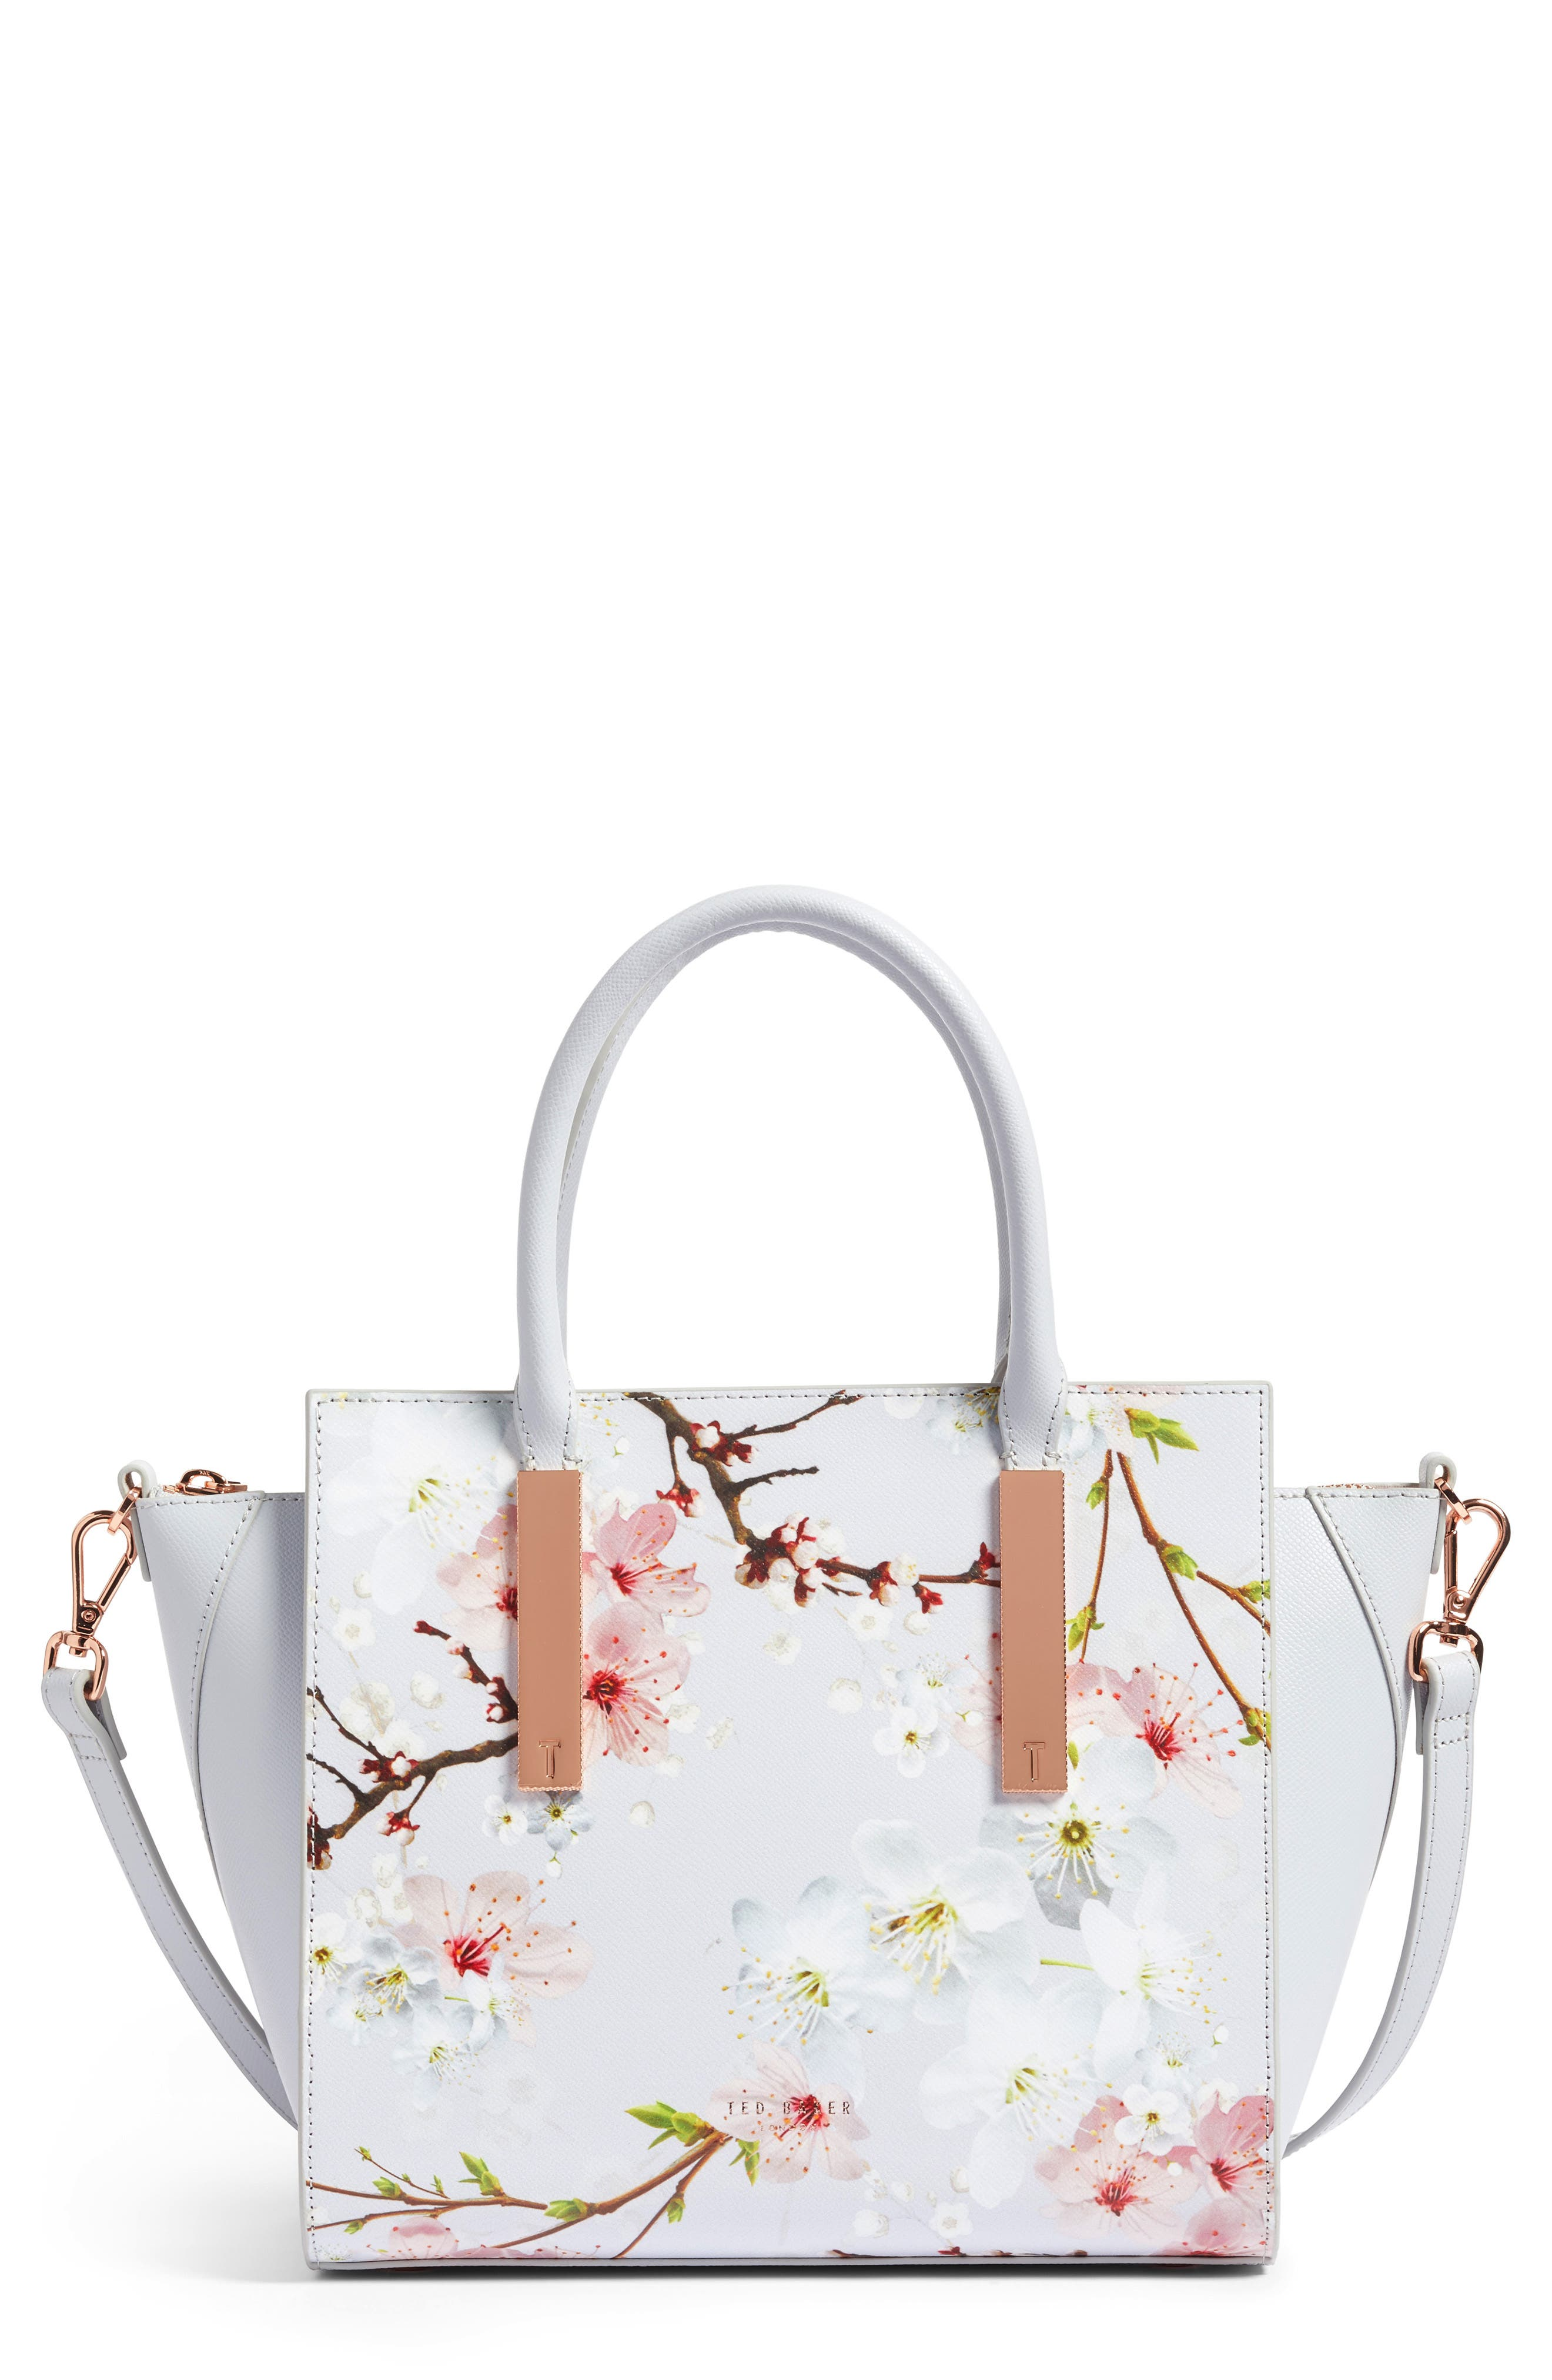 Blossom Leather Tote,                             Main thumbnail 1, color,                             020